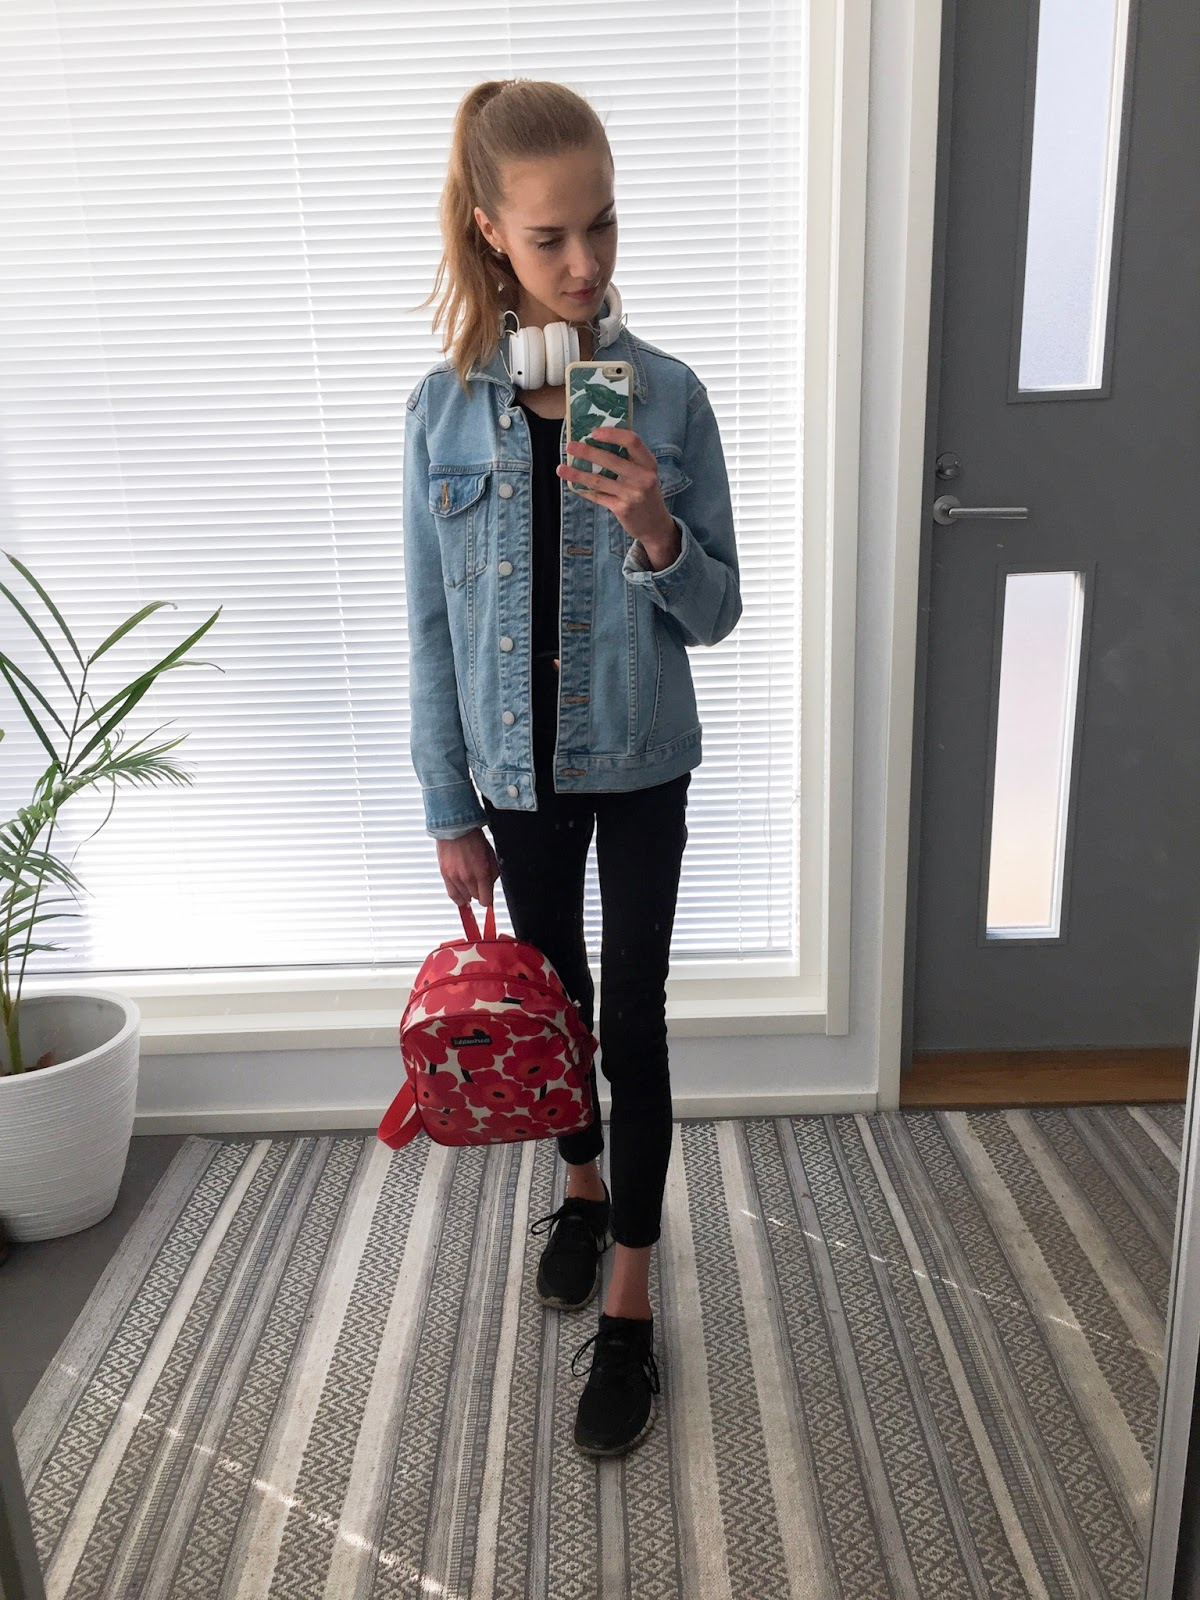 fashion-blogger-everyday-outfits-muotibloggaaja-arkiasut-allblack-kokomusta-denim-jacket-farkkutakki